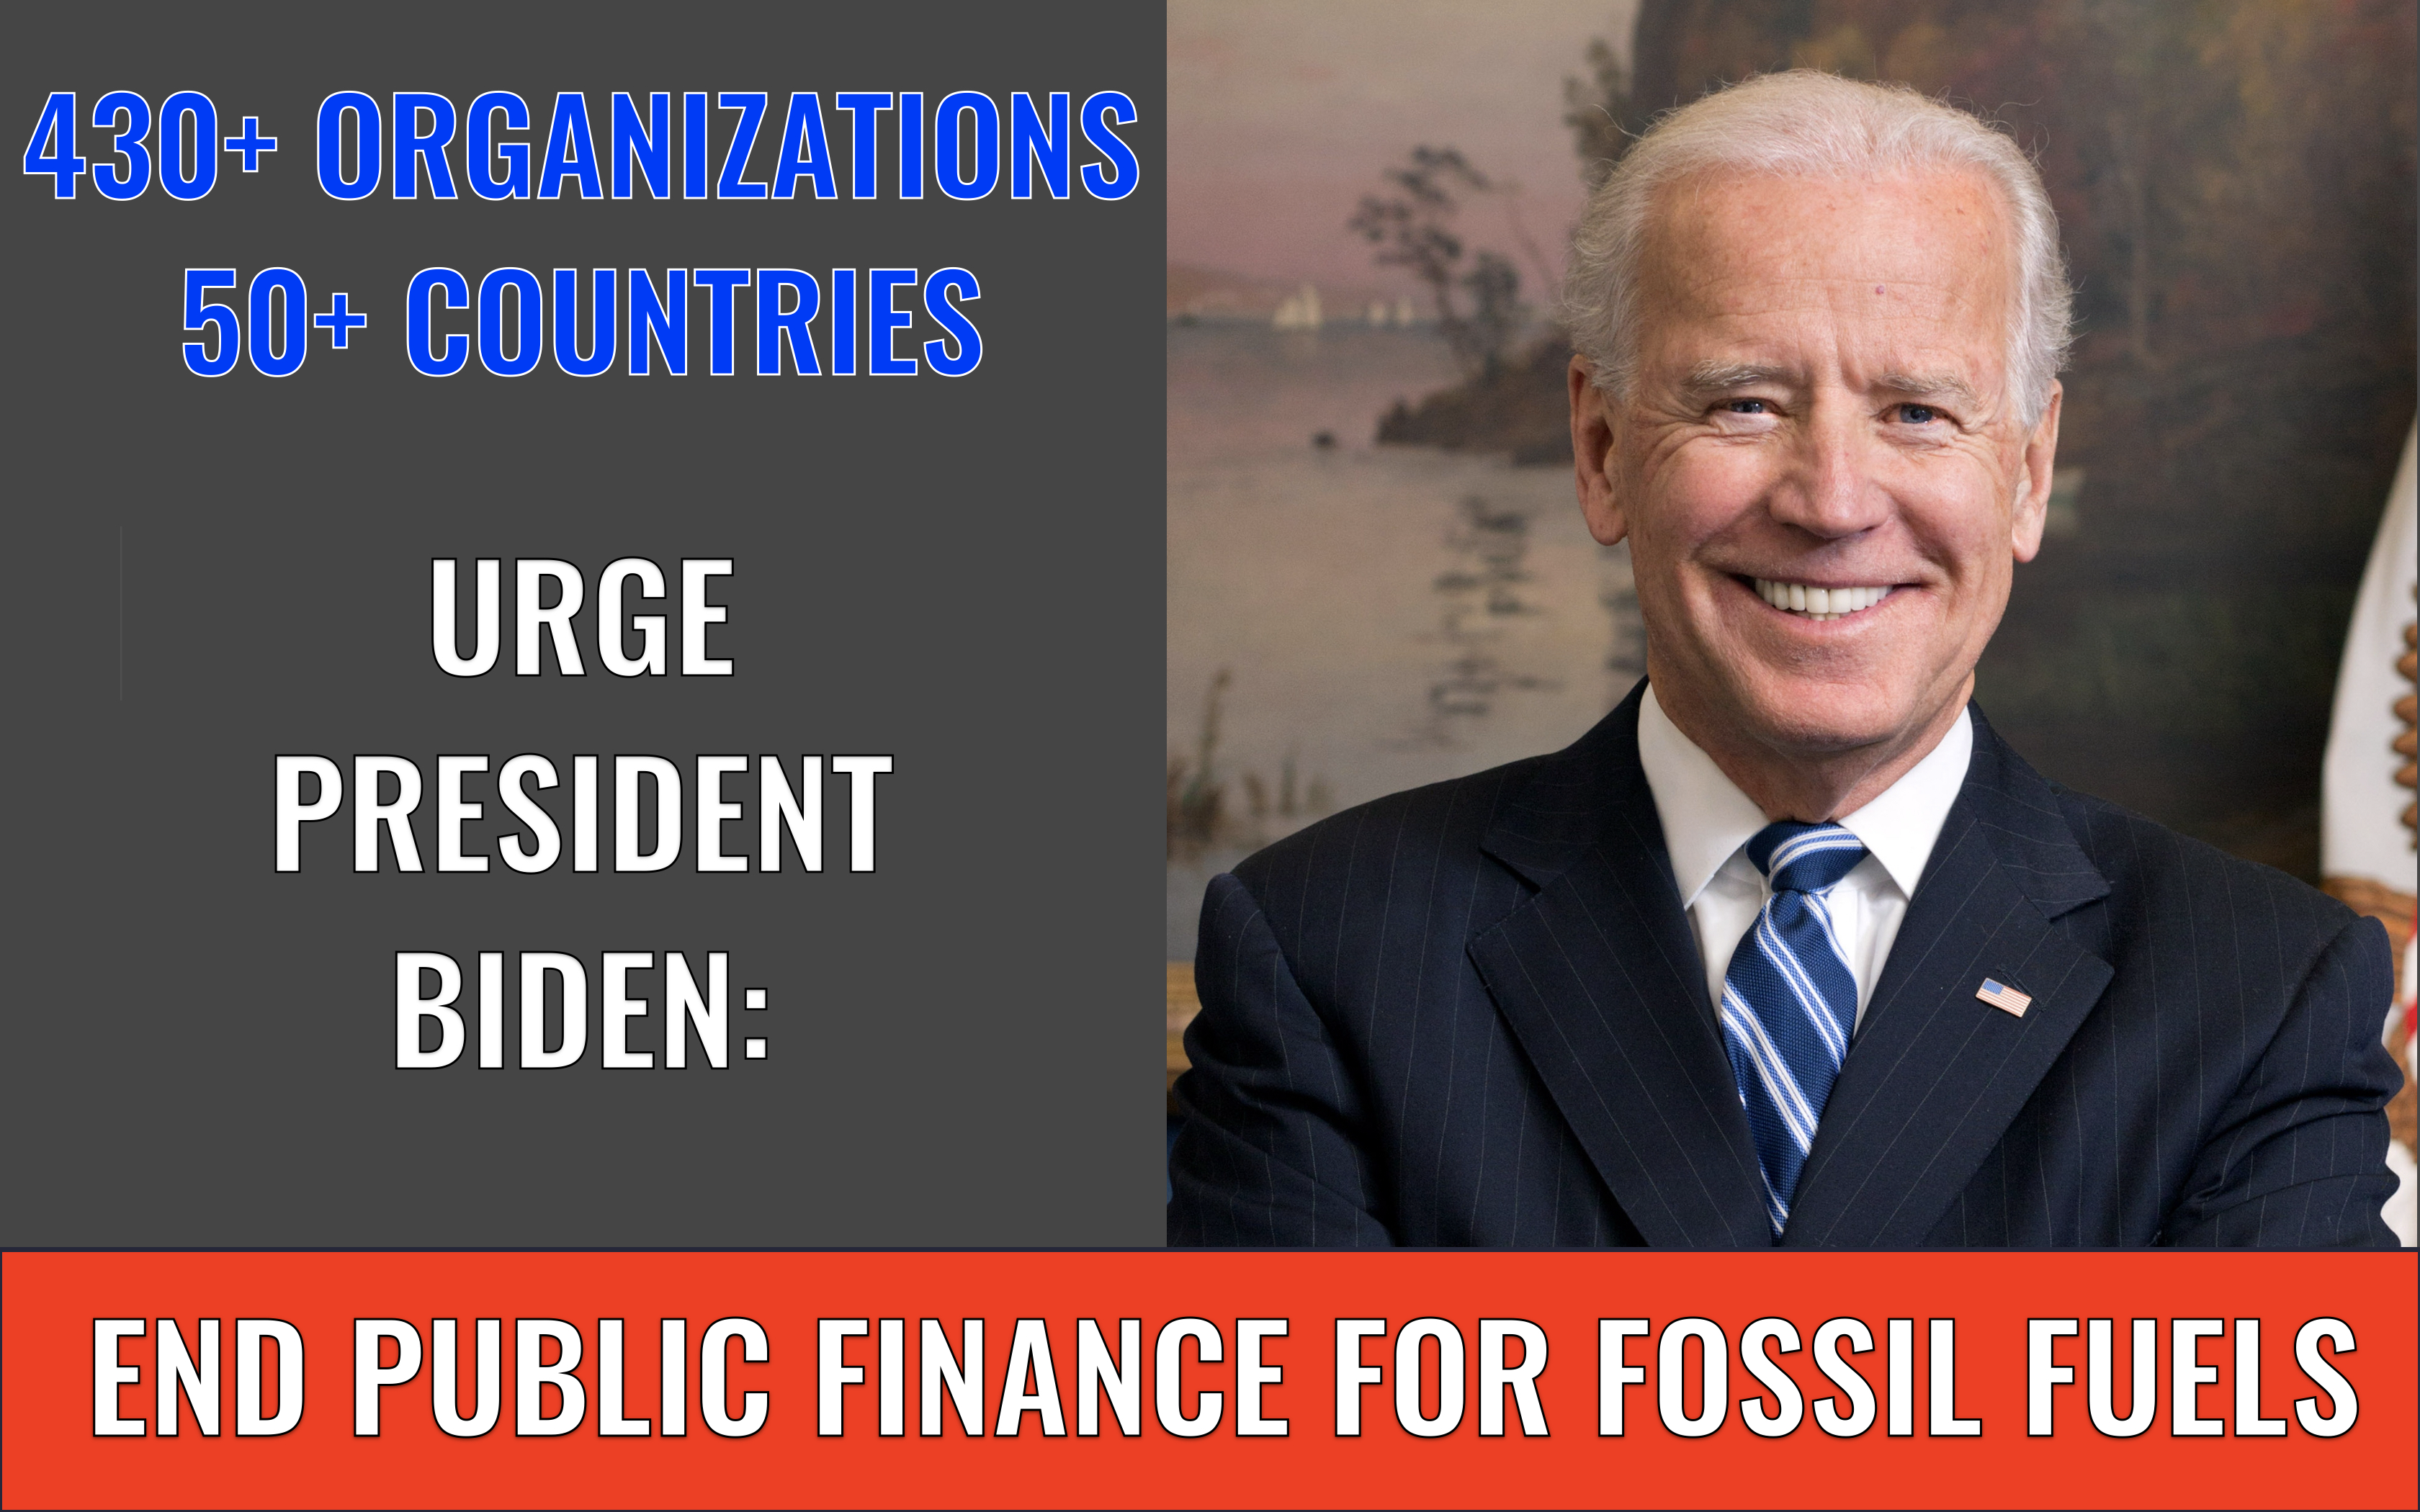 Nearly 450 Organizations Call on Biden Administration to End Public Finance for Fossil Fuels